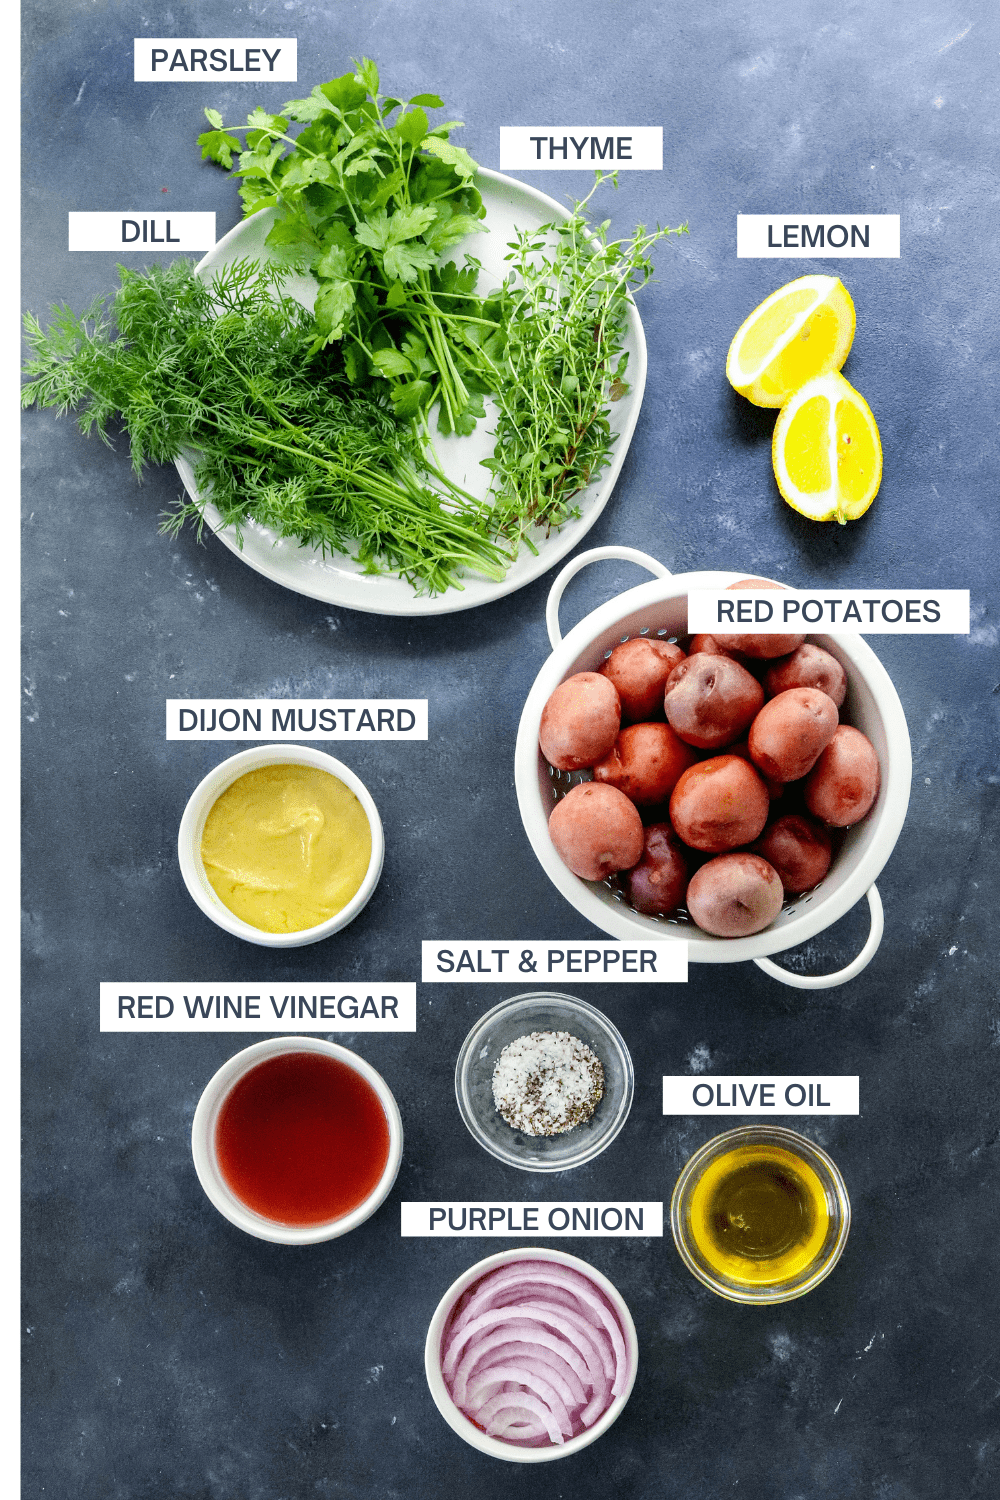 Green herbs on a round plate, sliced lemon, white bowl of whole rd potatoes, bowl of dijon mustard, bowl of olive oil, bowl of sliced rd onion and a bowl of red wine vinegar on a blue surface with labels of the ingredients over each item.